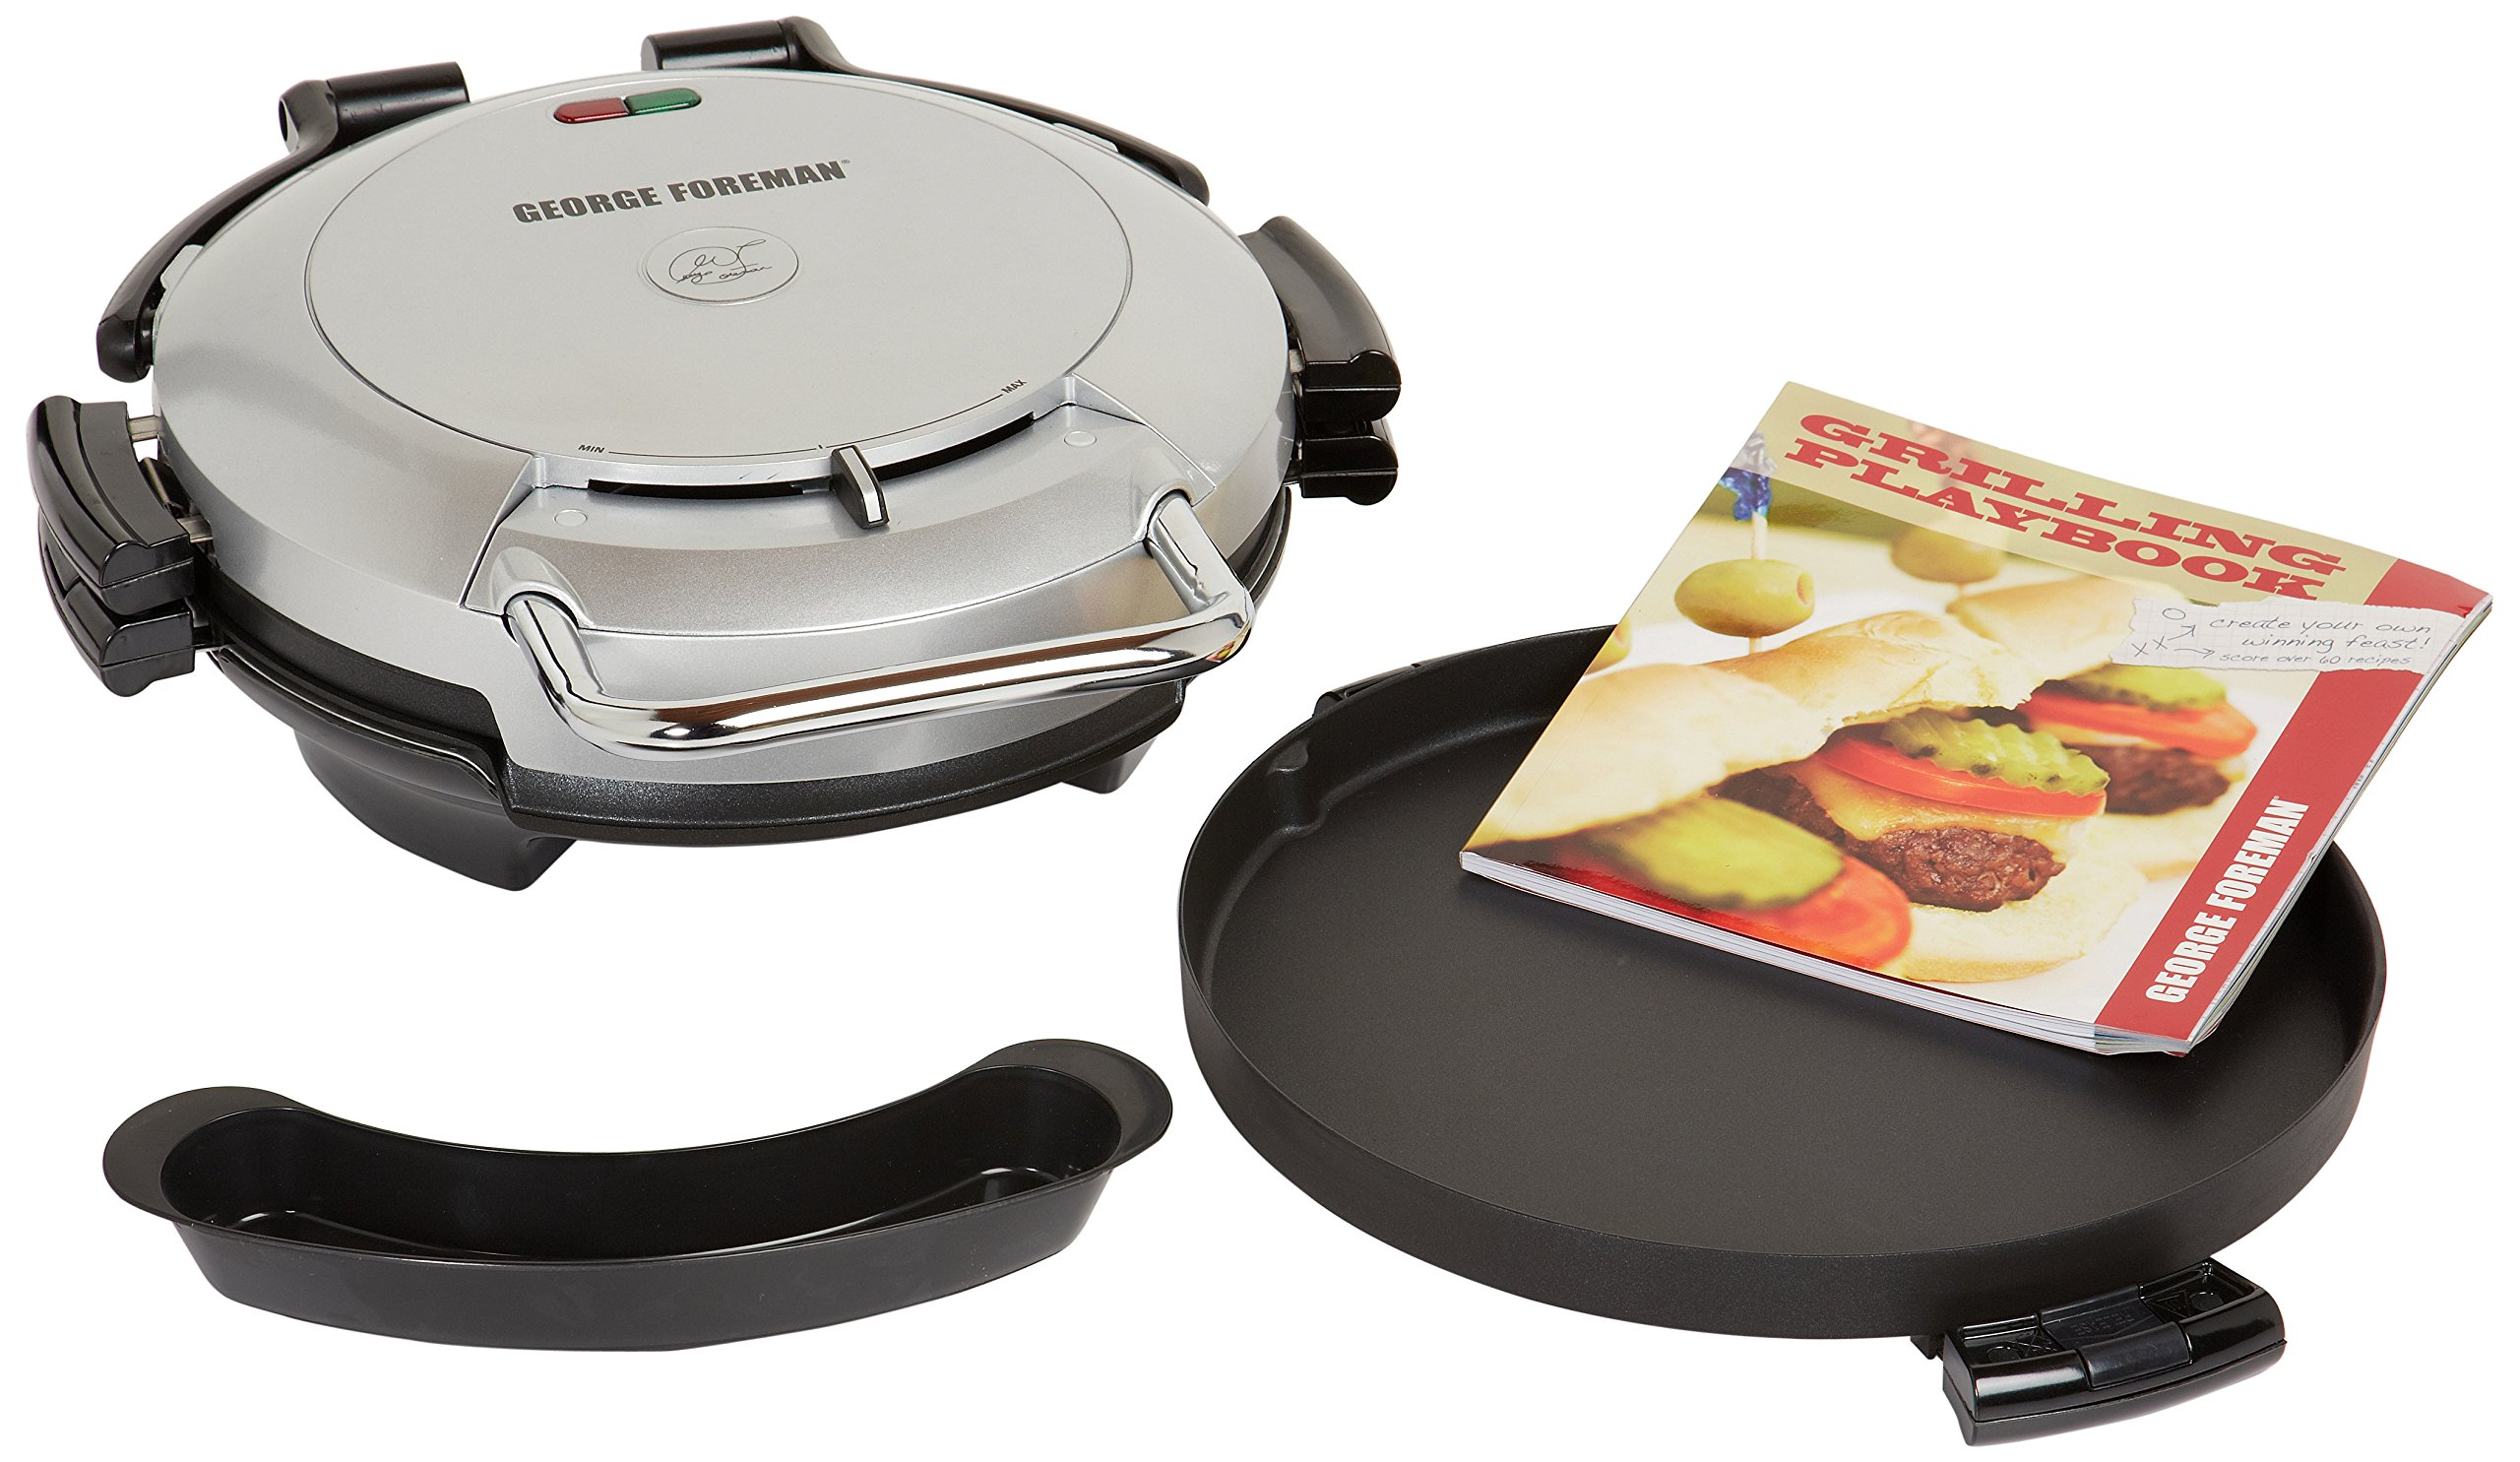 George Foreman GRP0720PQ 360 Grill with 2-Removable Grill Plates, Bake Pan and Cookbook, Plantium